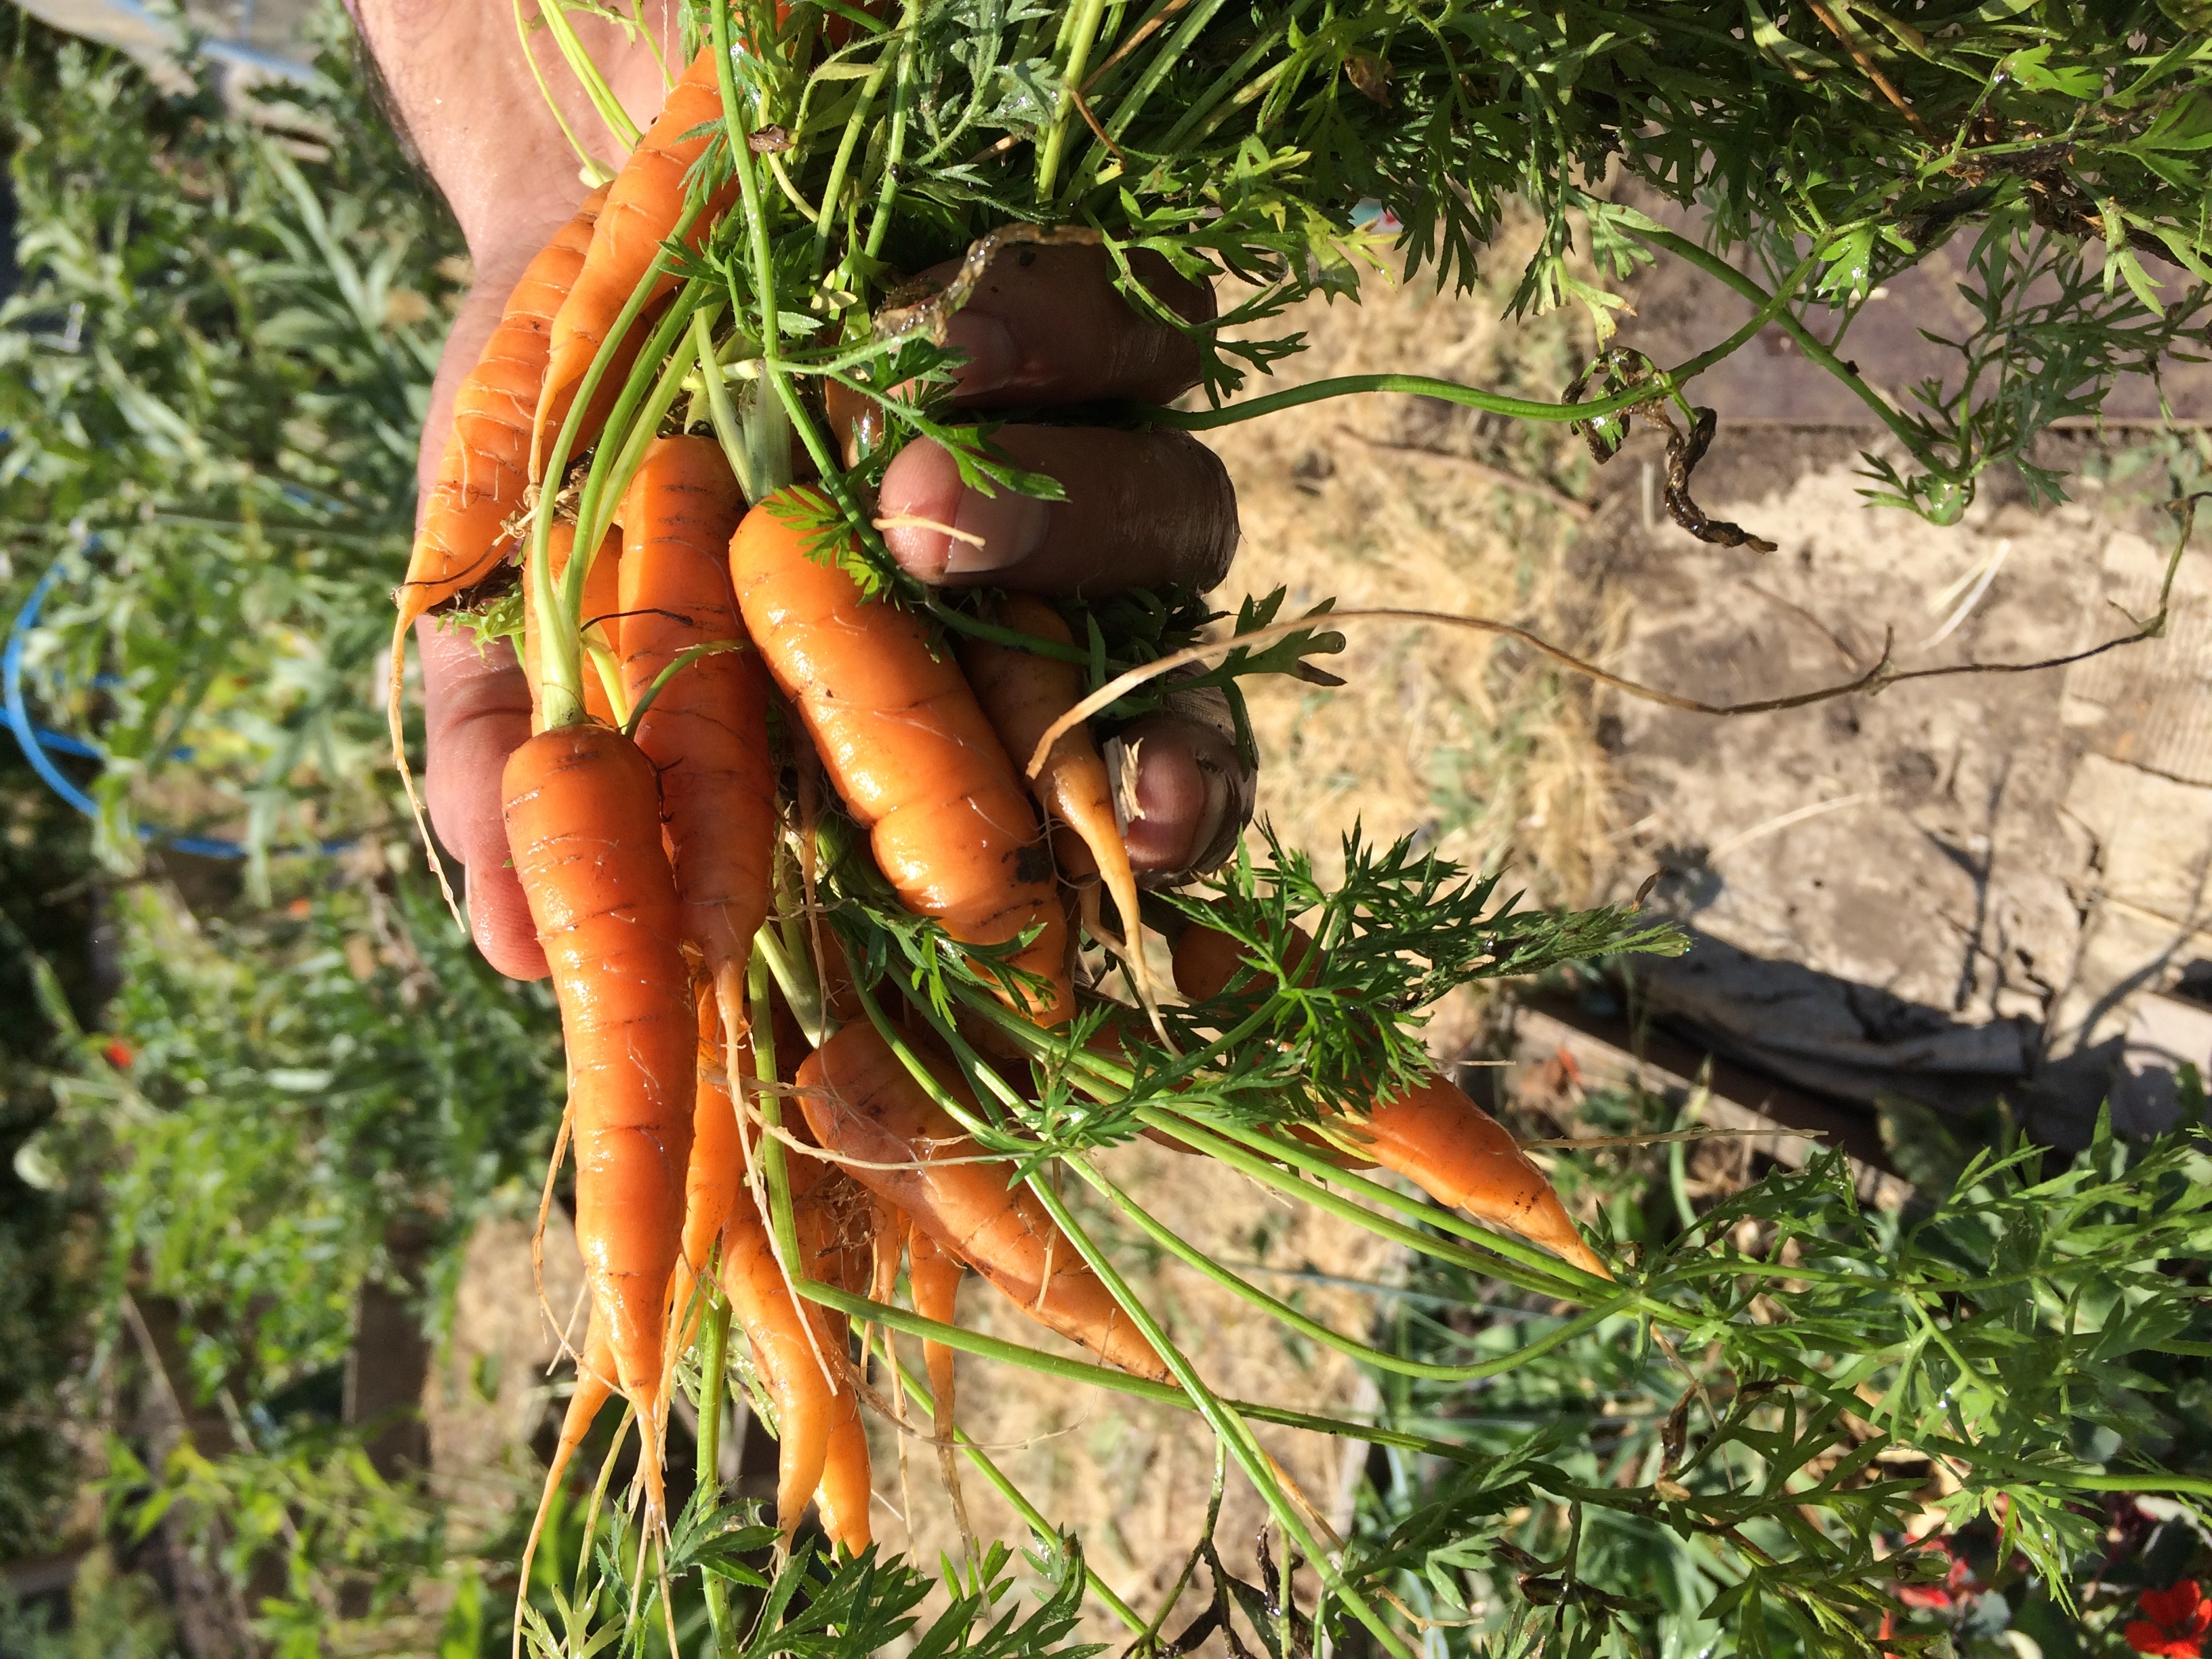 Carrots in hand